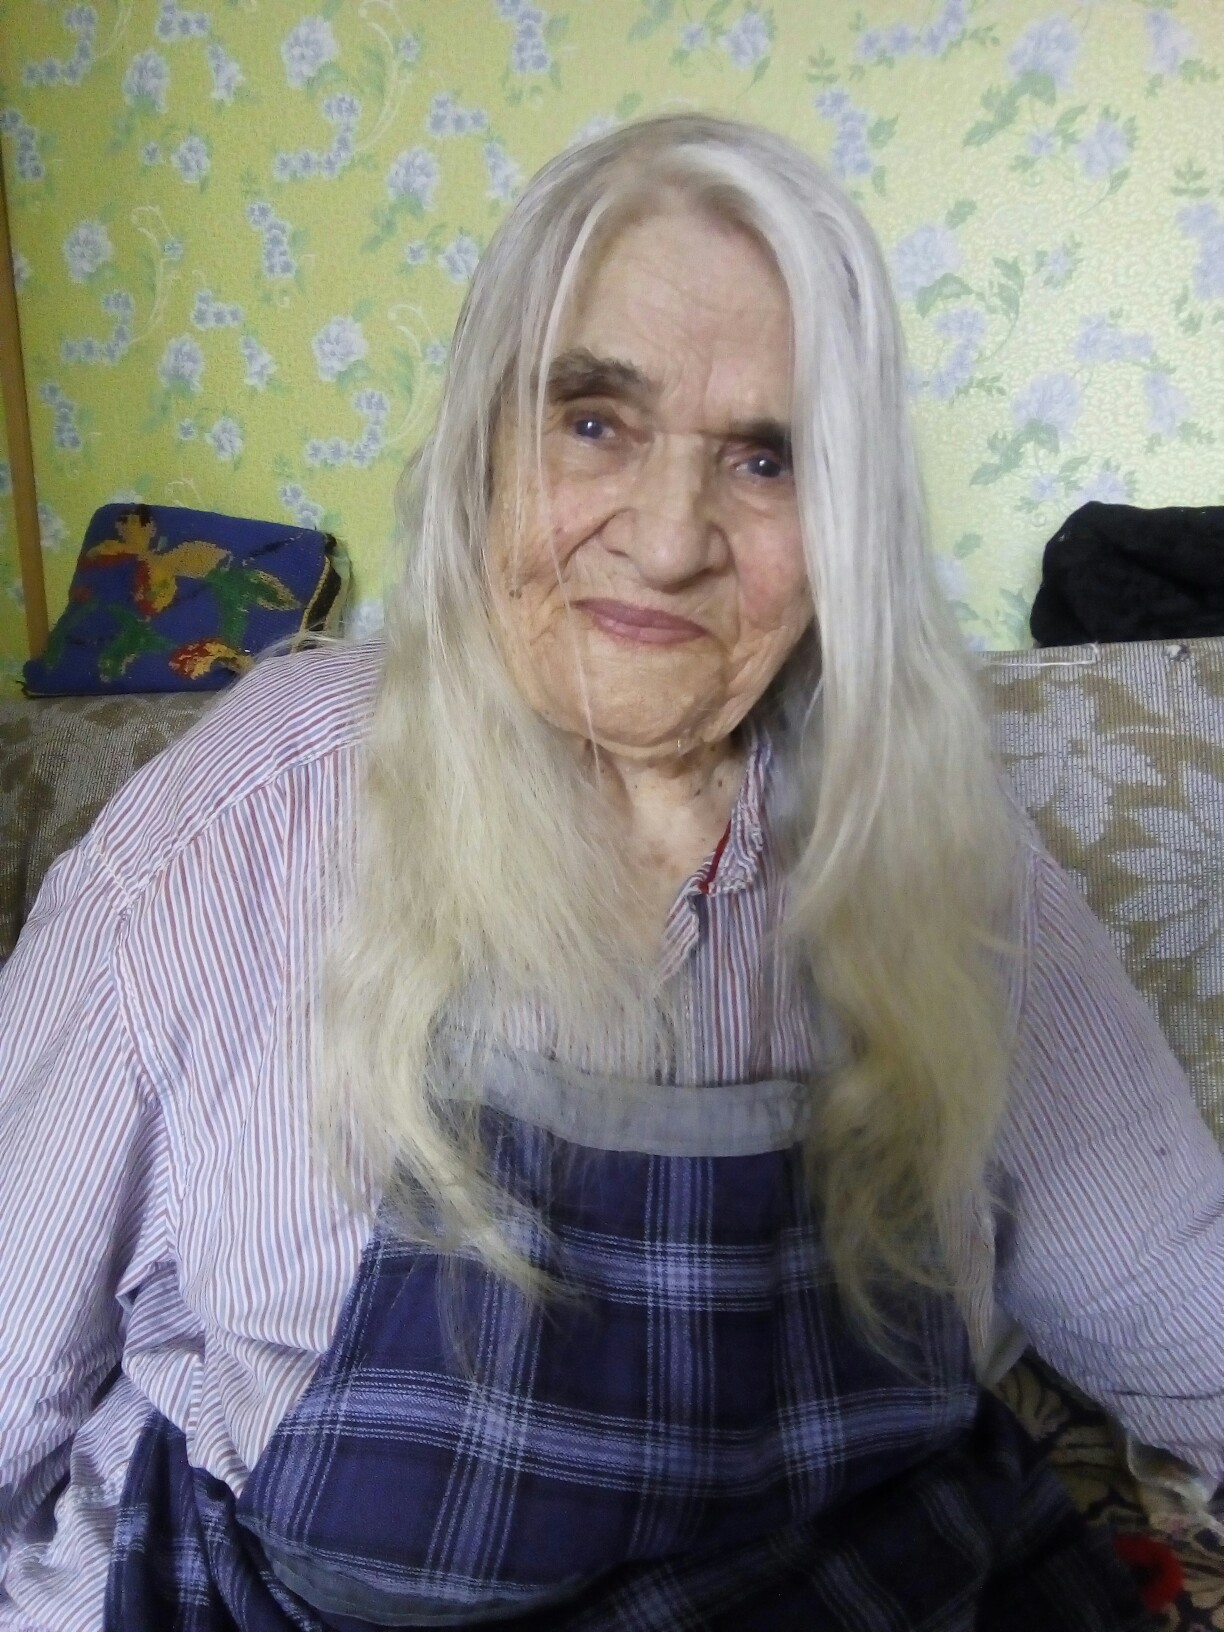 My beautiful 95 years old granny | Faces Aged | Pinterest